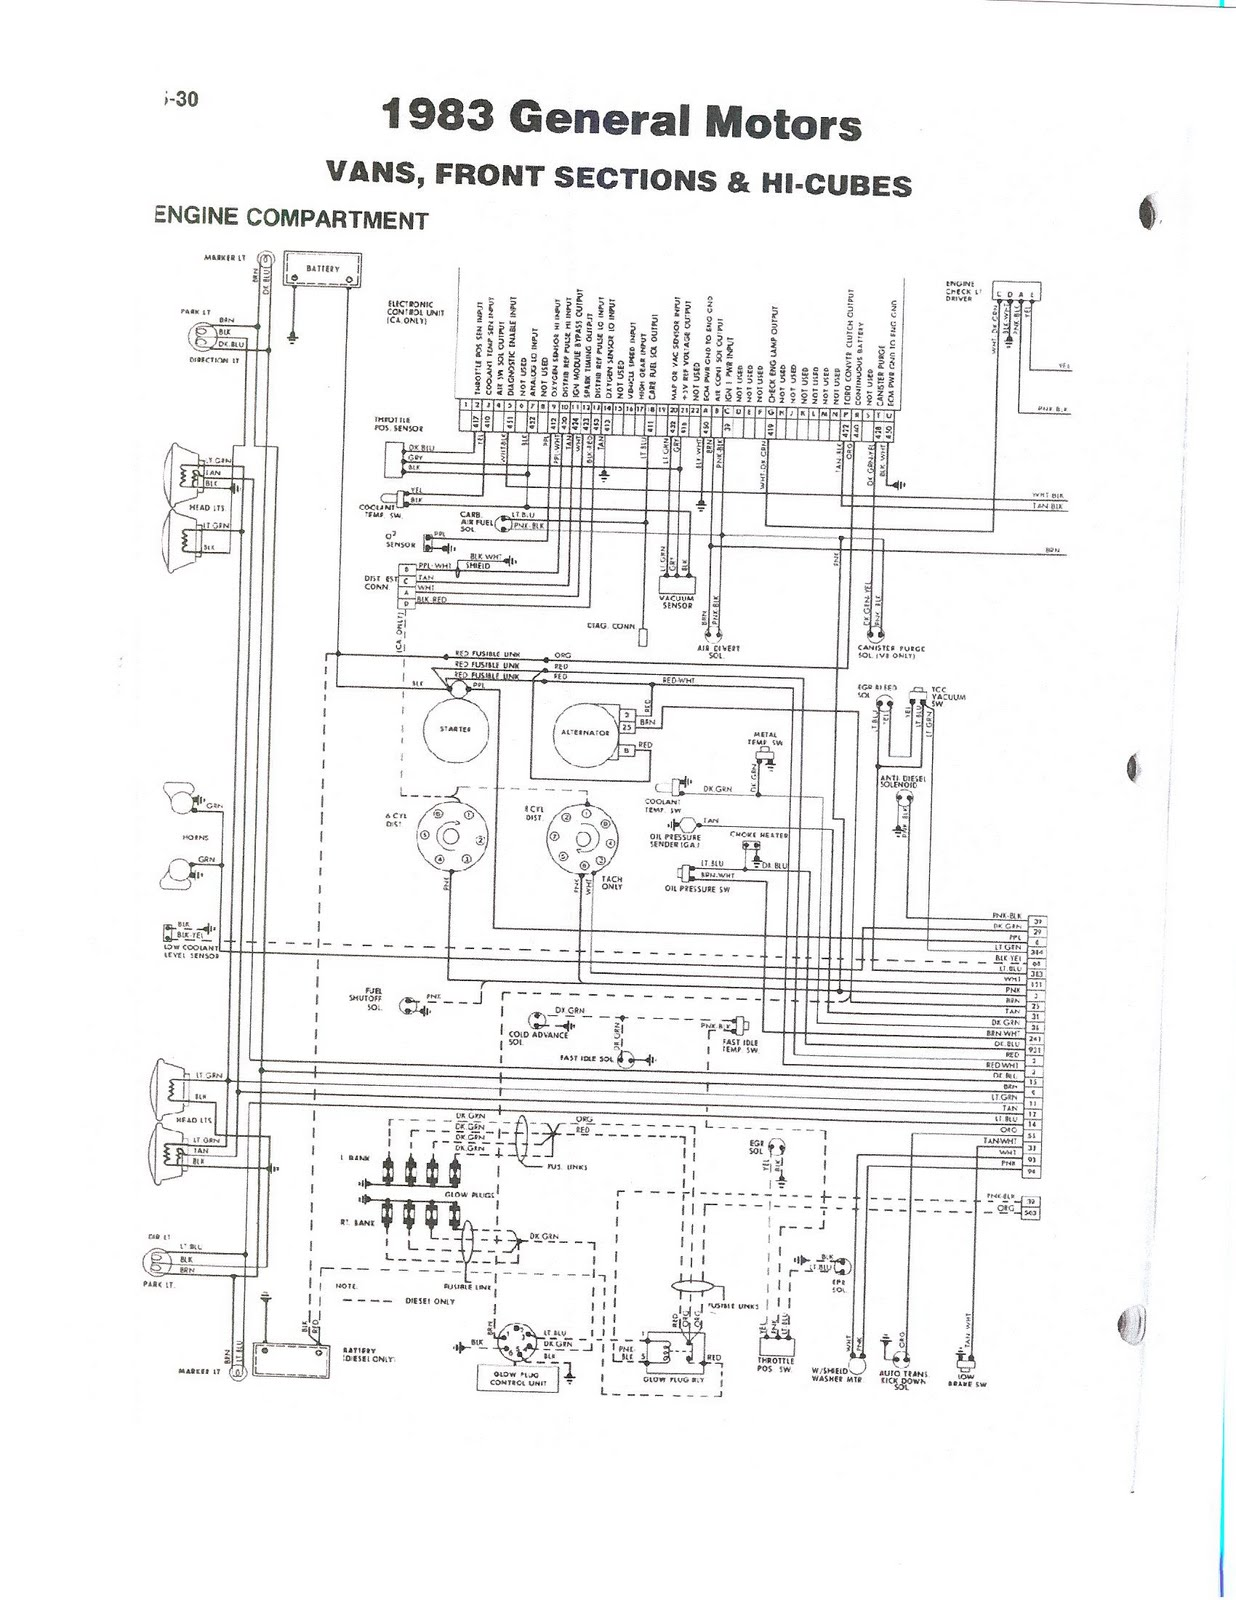 Fleetwood Wiring Diagram Wiring Diagrams Schematics - Wiring Diagram